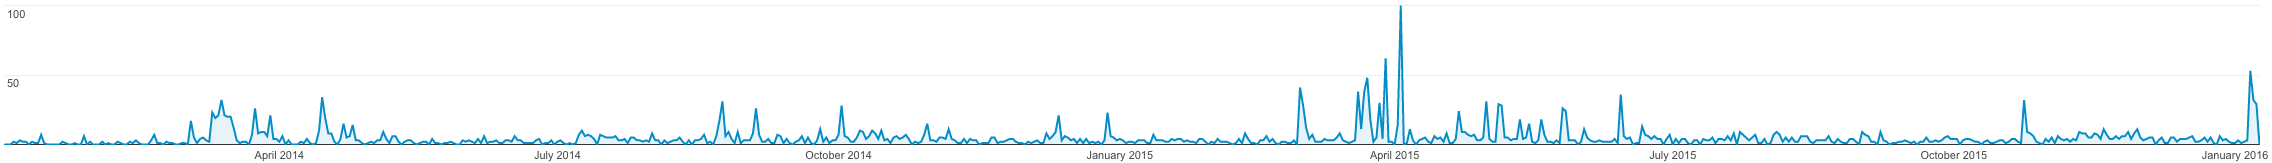 Google Analytics: number of sessions per day